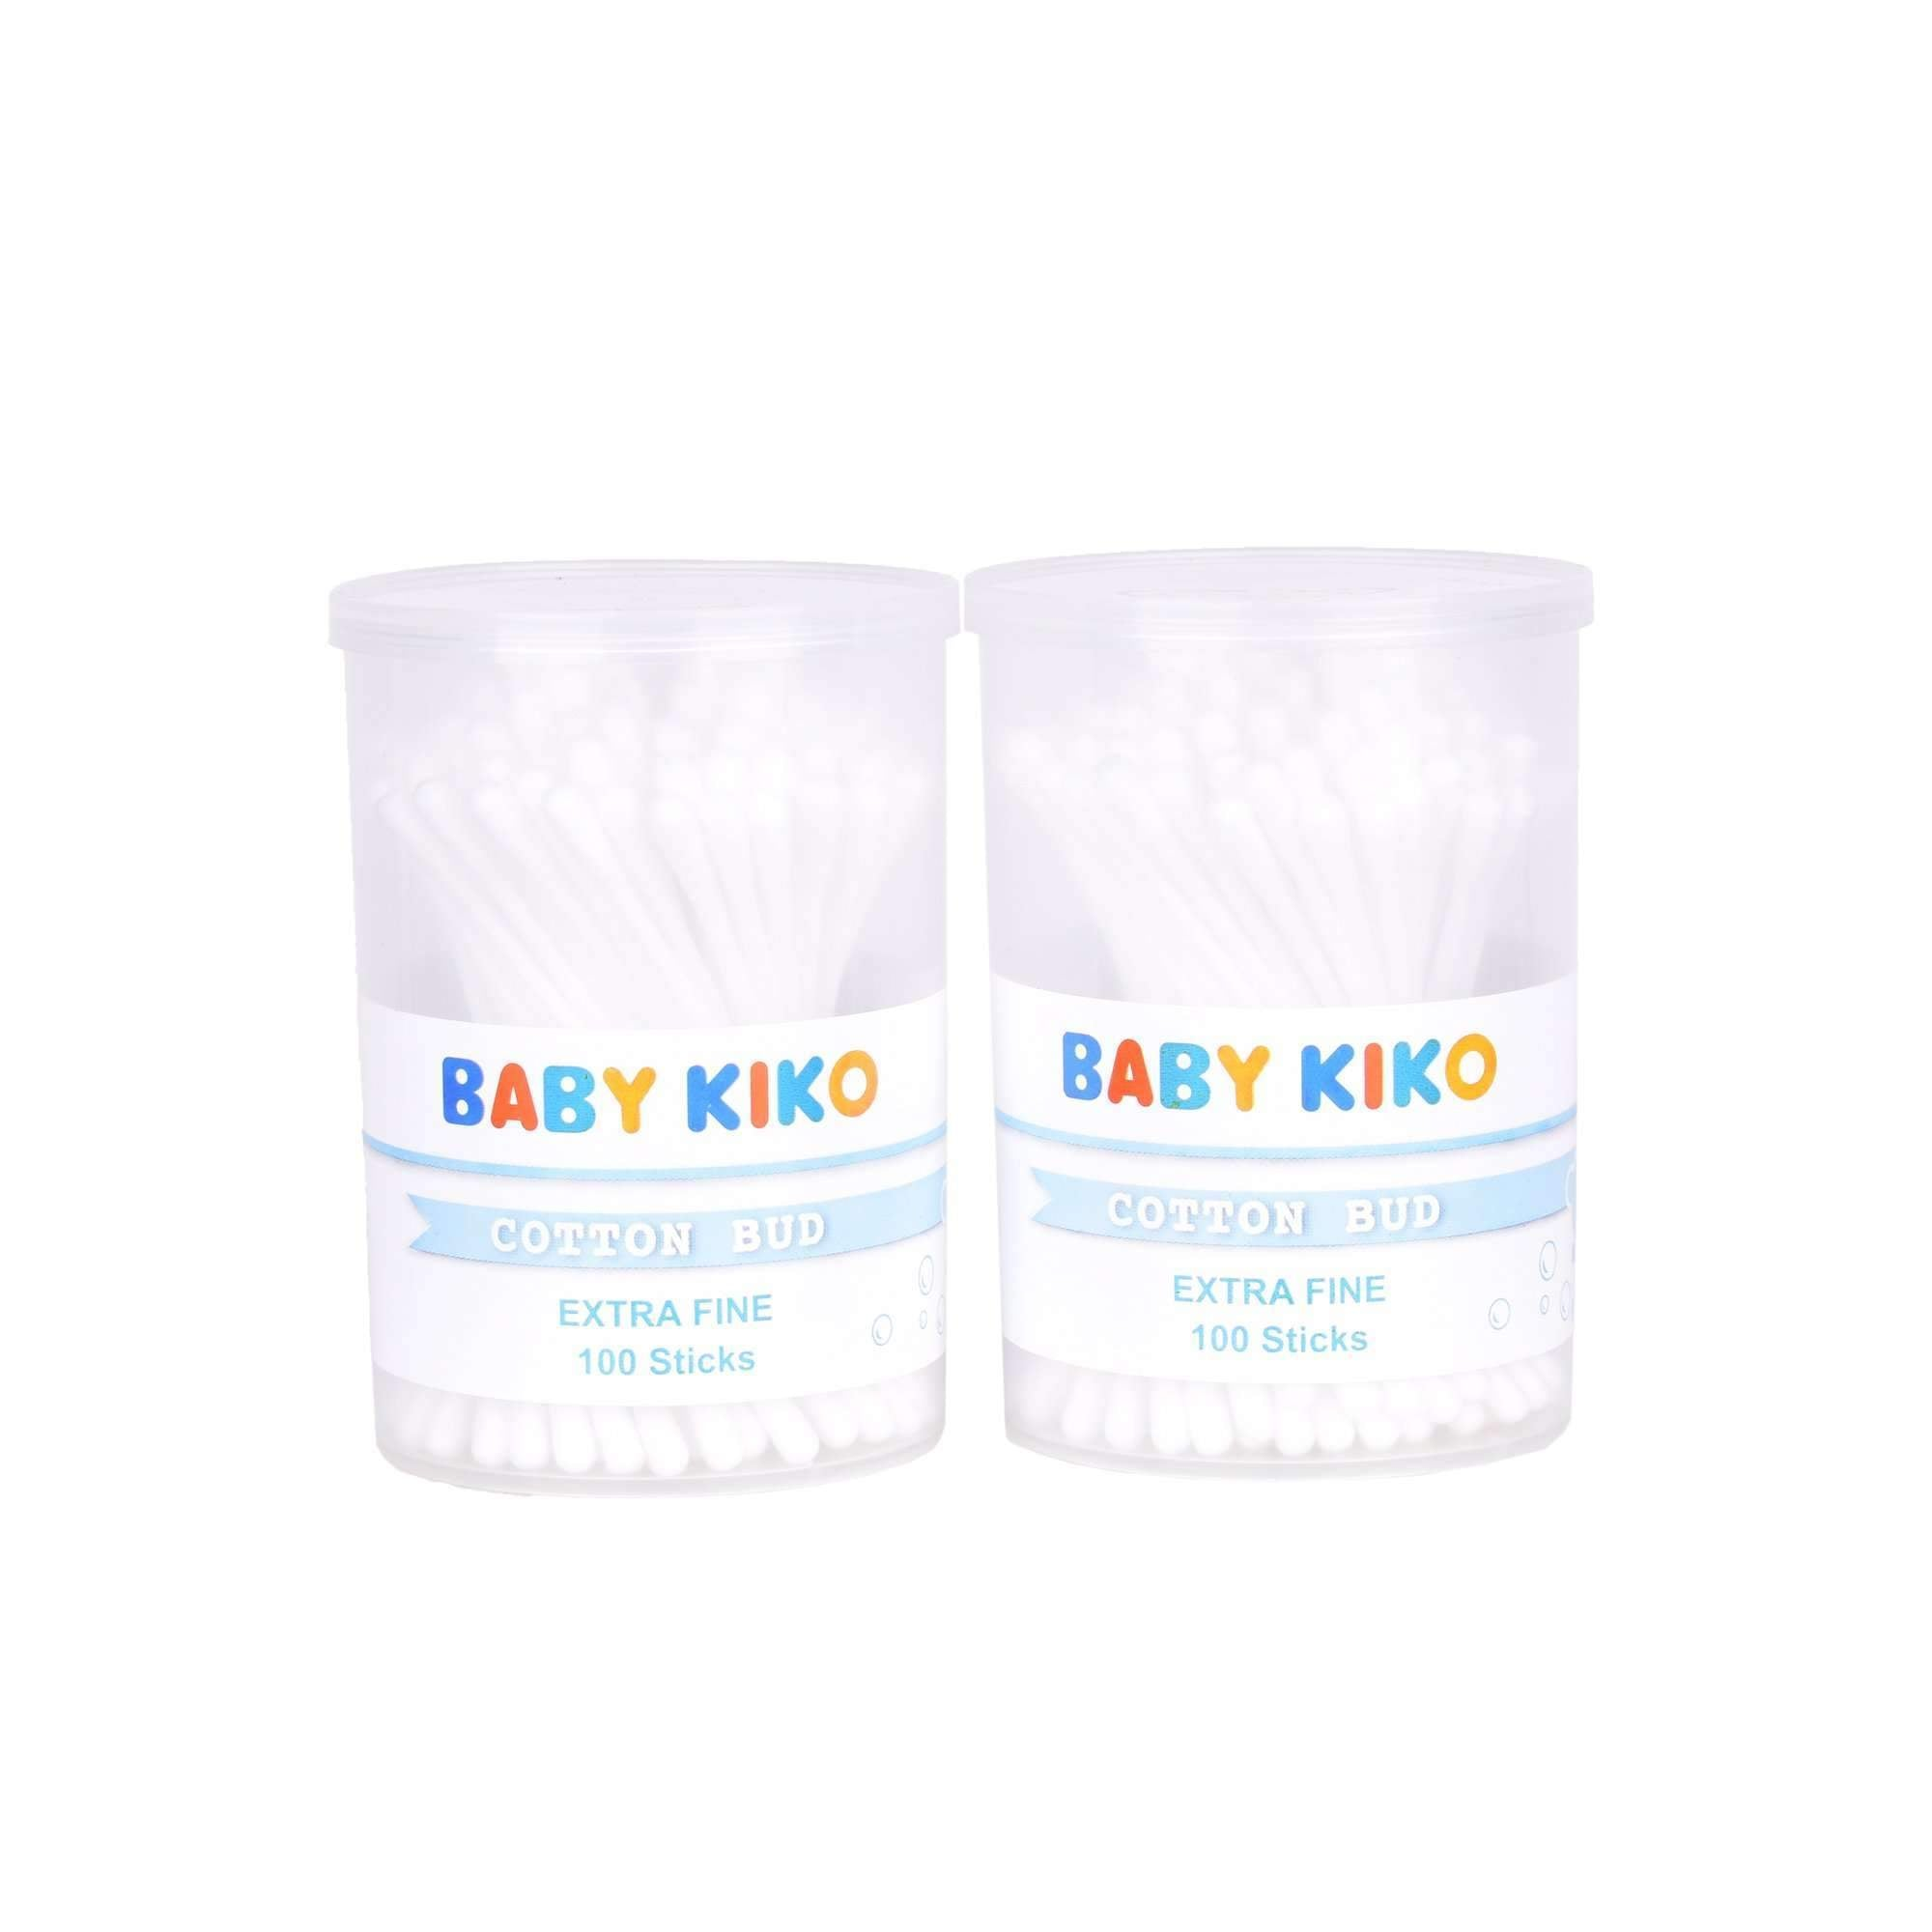 Baby KIKO Extra Fine Cotton Bud Twin Pack - 100 sticks X 2 3630-004 : Buy Baby KIKO online at CMG.MY